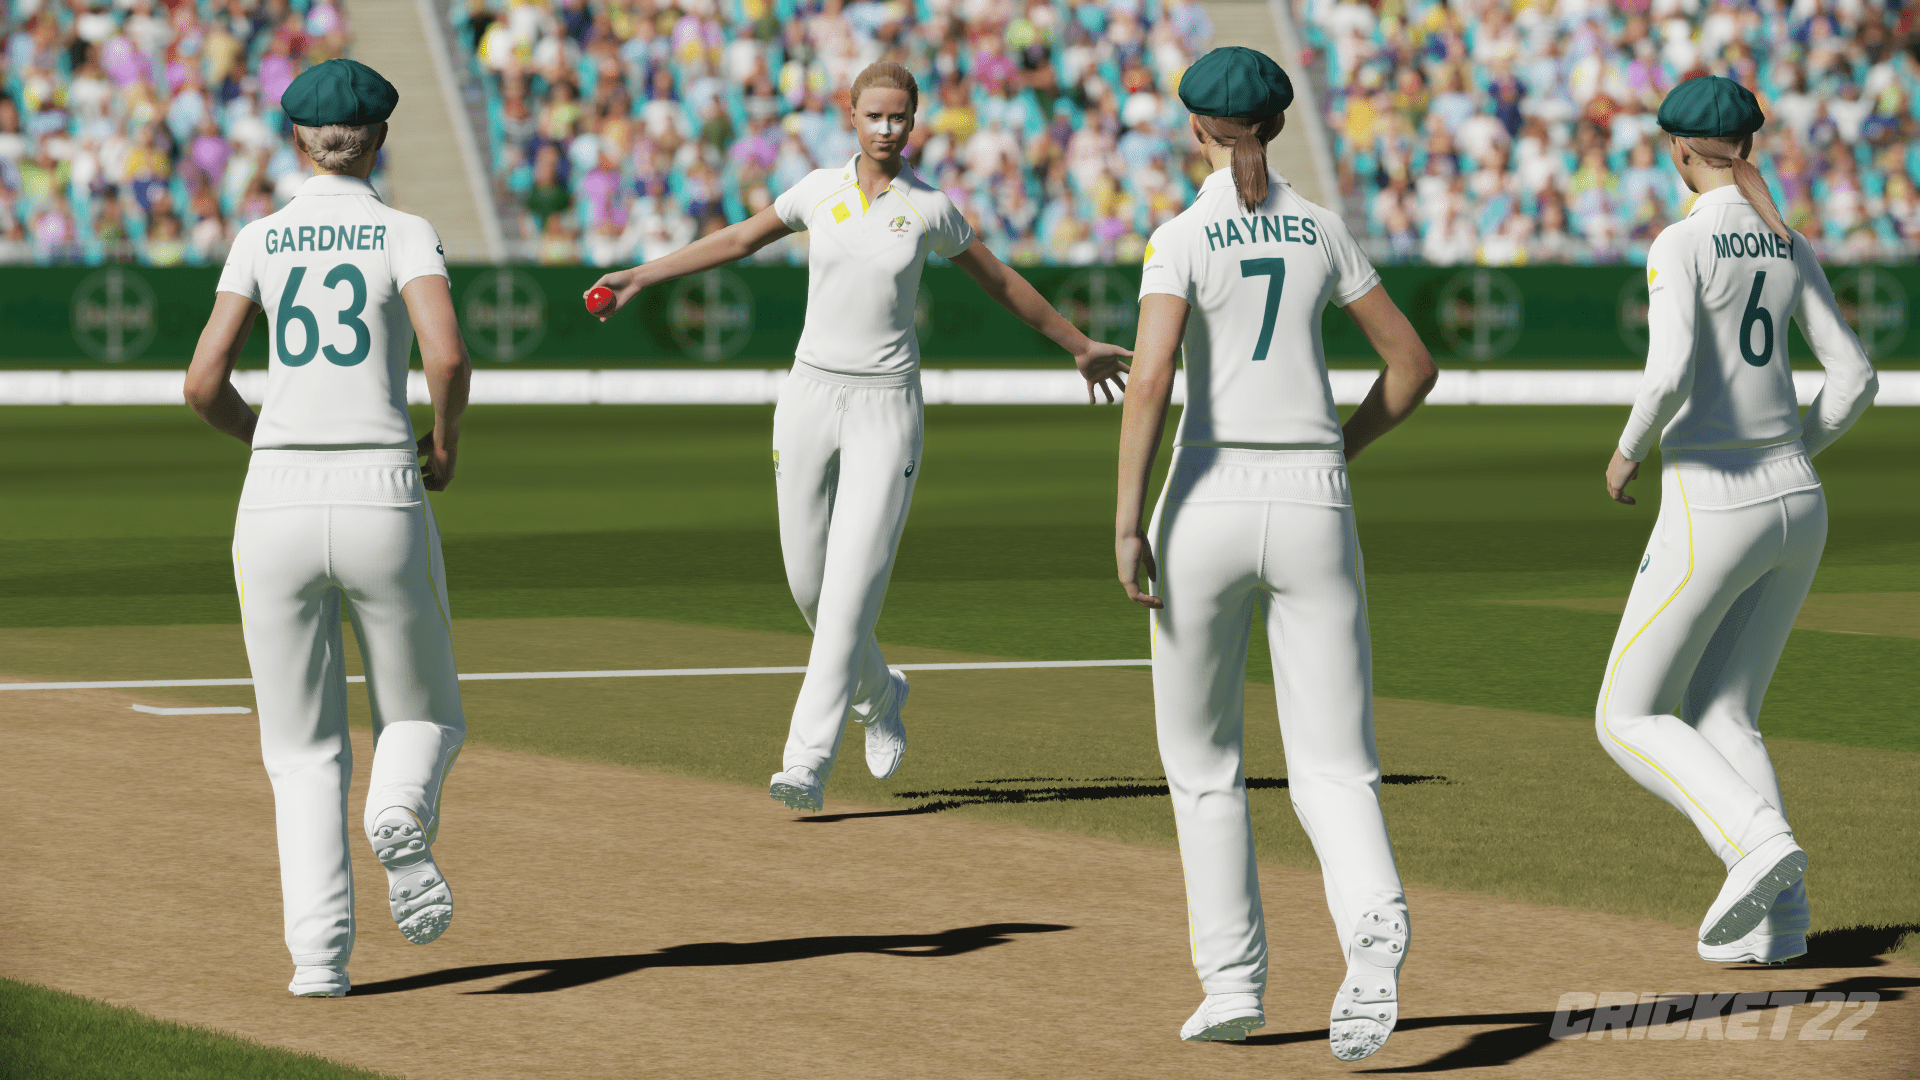 The new era of cricket has arrived!